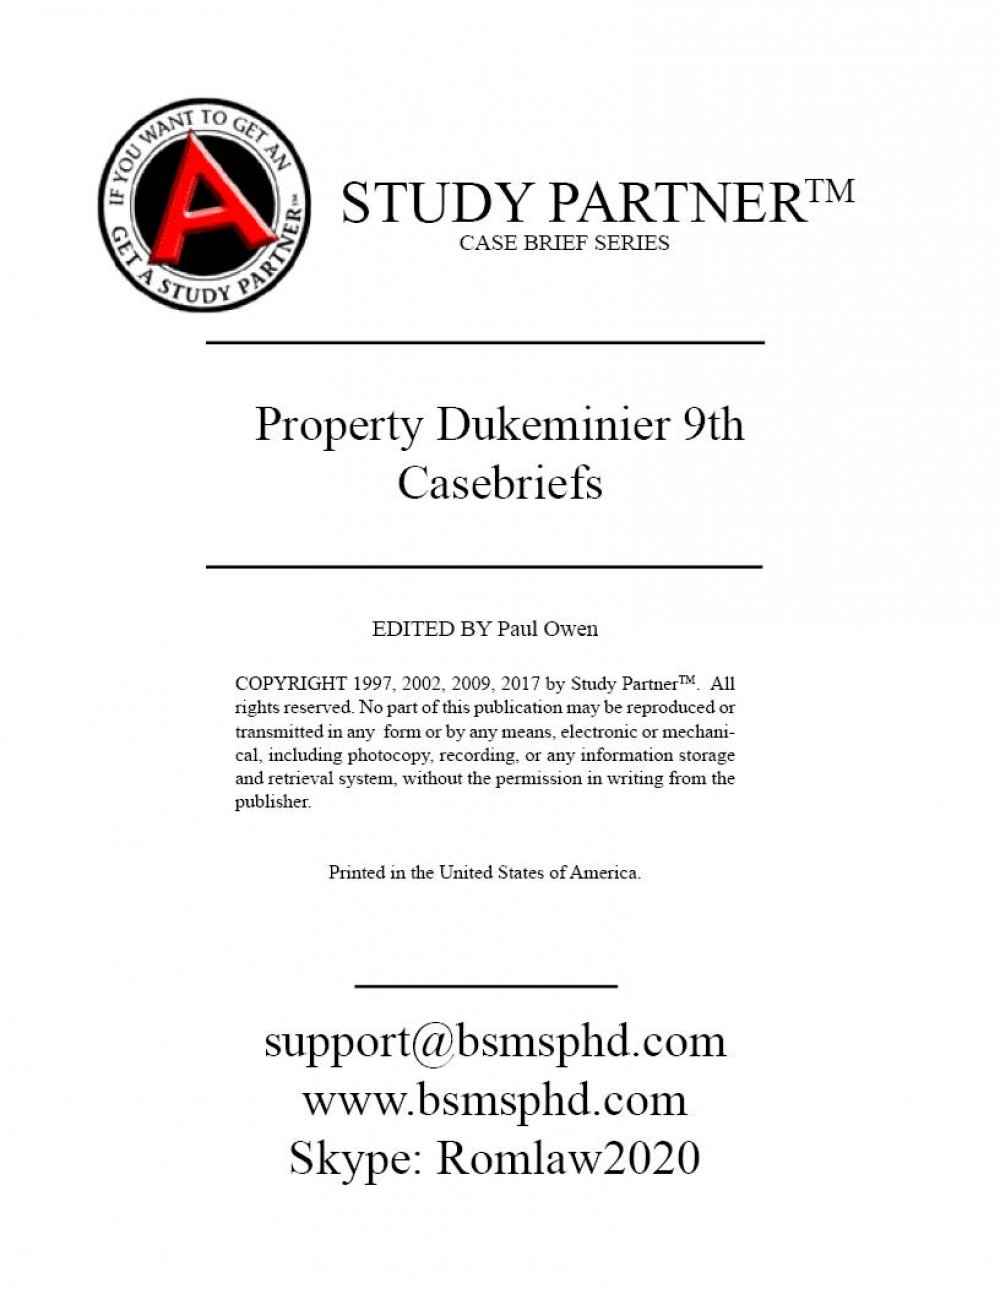 Read Online Casebriefs for the casebook titled Property 9th Edition by Dukeminier ISBN: 9781454881995 1454881992 9781454898177 9781454898283 9781454897026 9781454896739 9781454896821 pdf